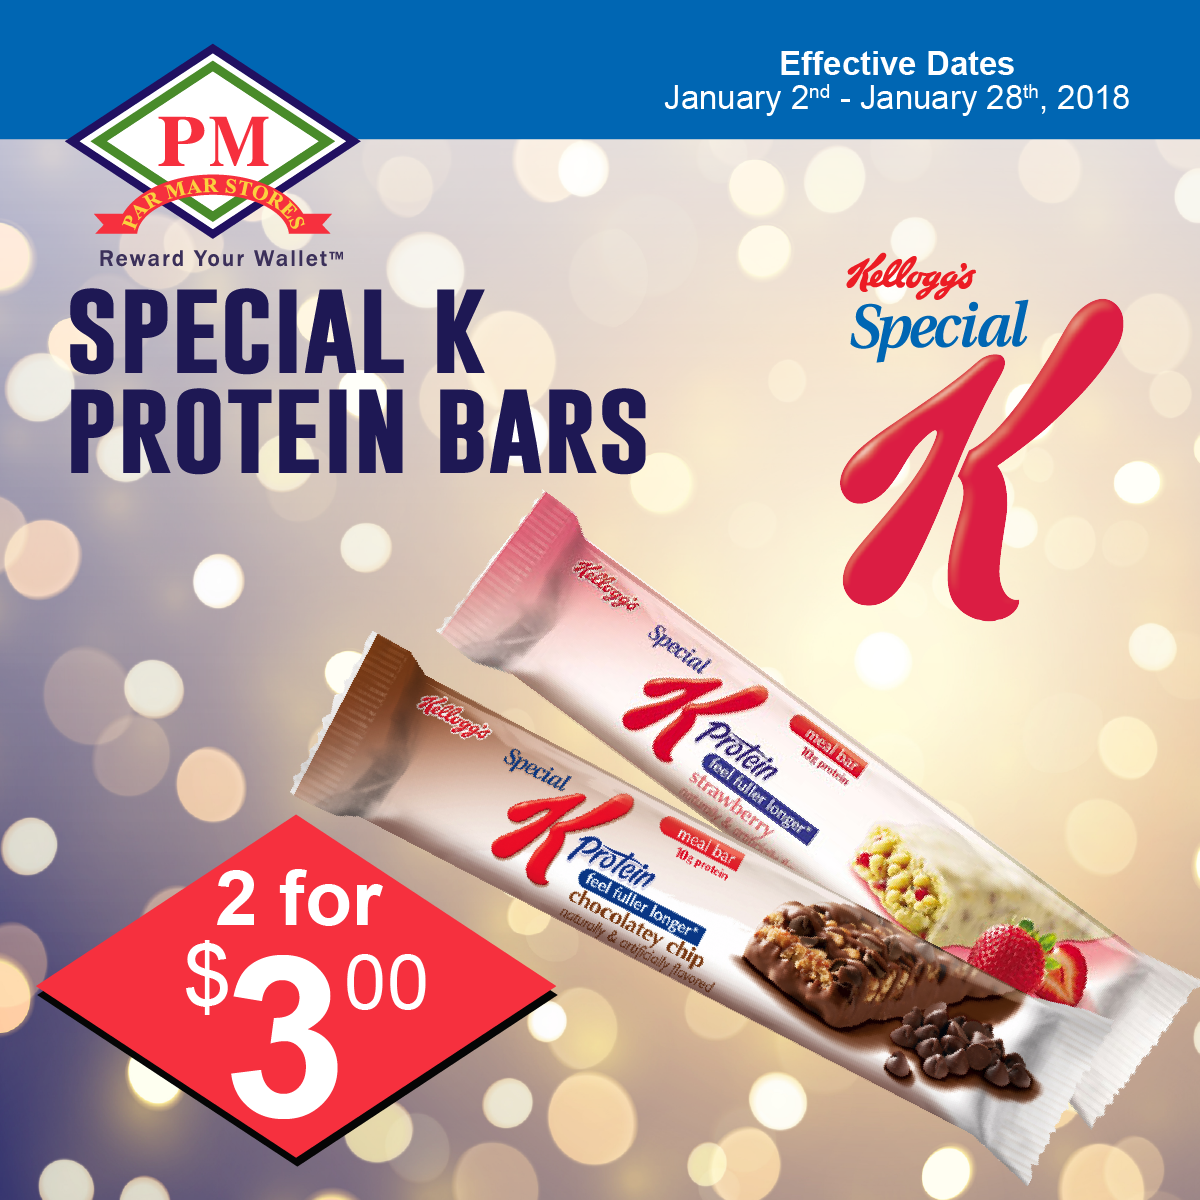 Speciall K protein bars